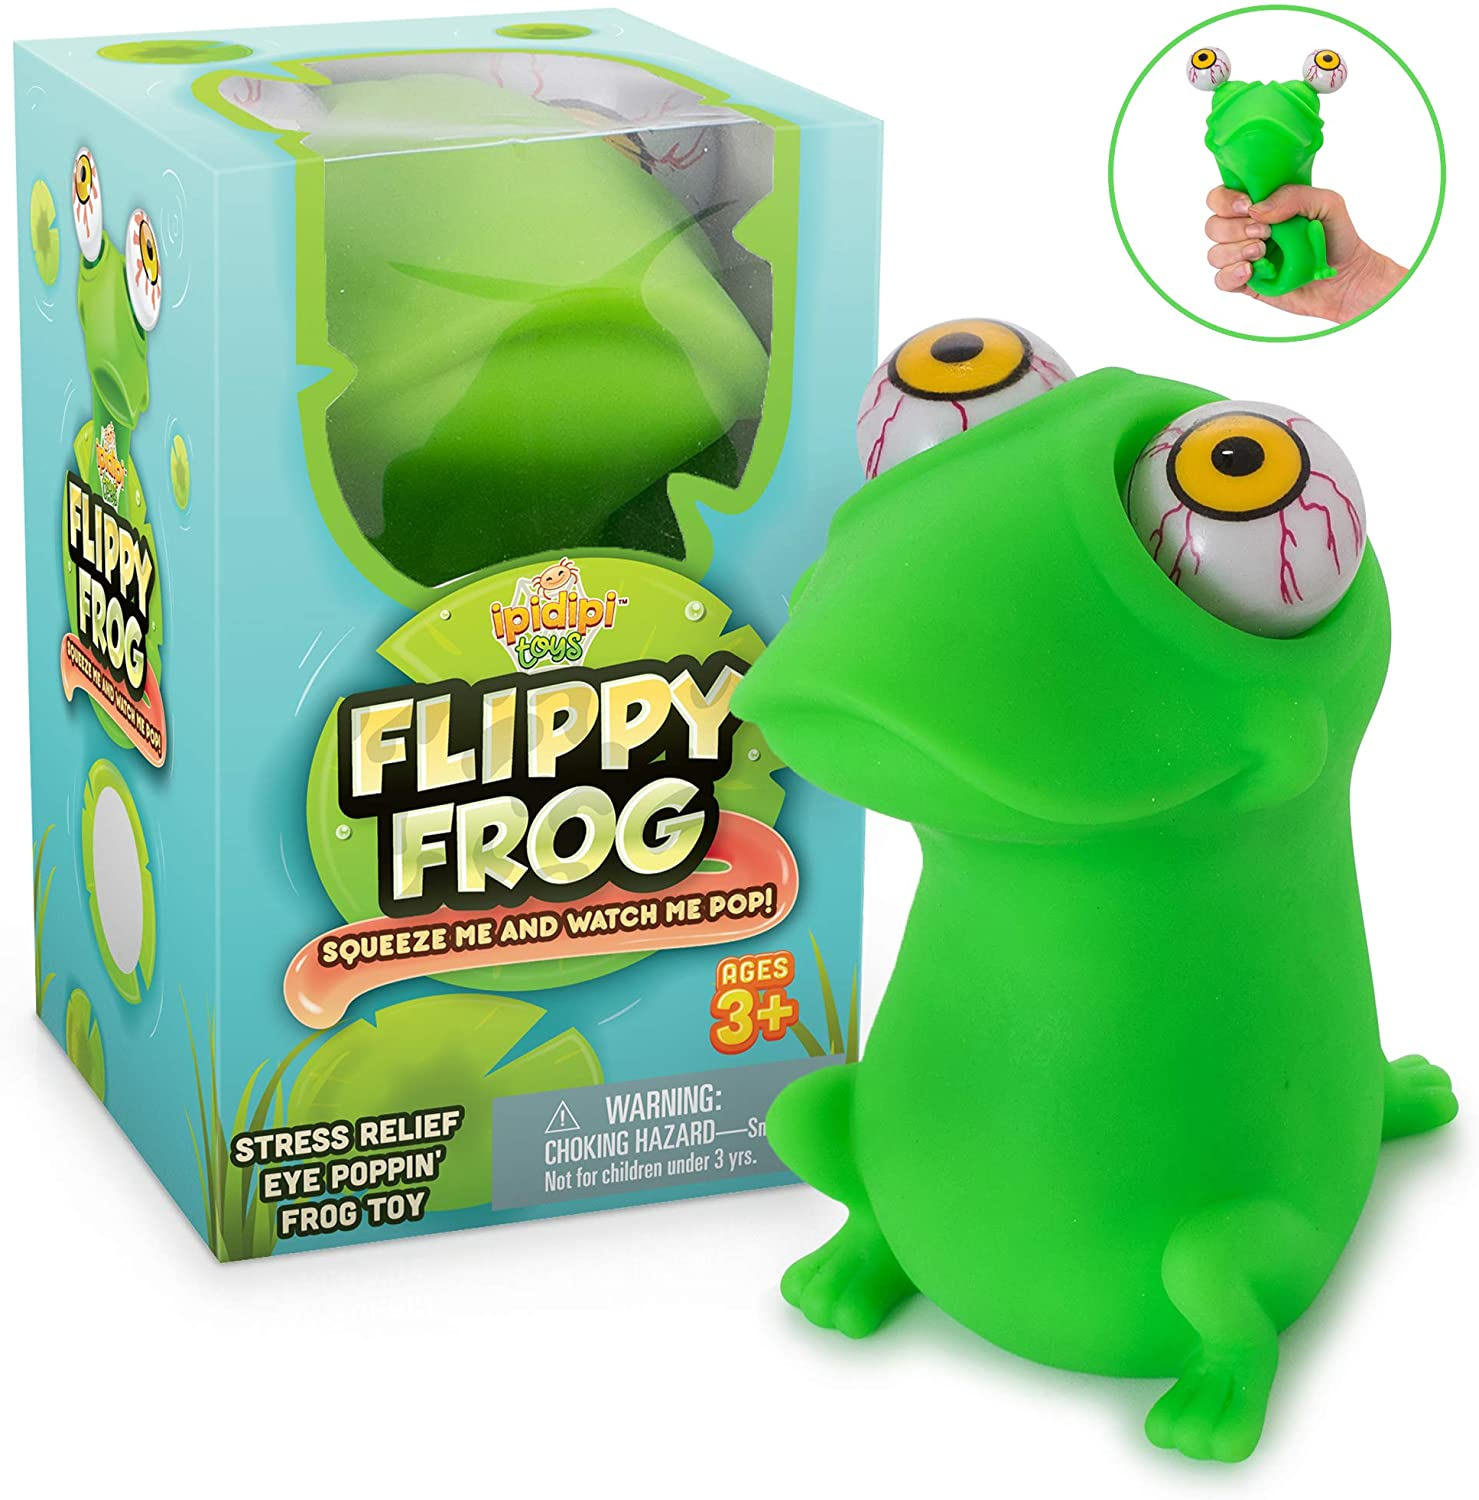 Squishy Eye Popping Flippy Frog - Large Squeeze - Stress Relief Toy - Latex Free Peepers Fidget - Anxiety Reducer Sensory Play - Great Gift for Toddlers Boys and Girls - Suitable for Autism and ADHD